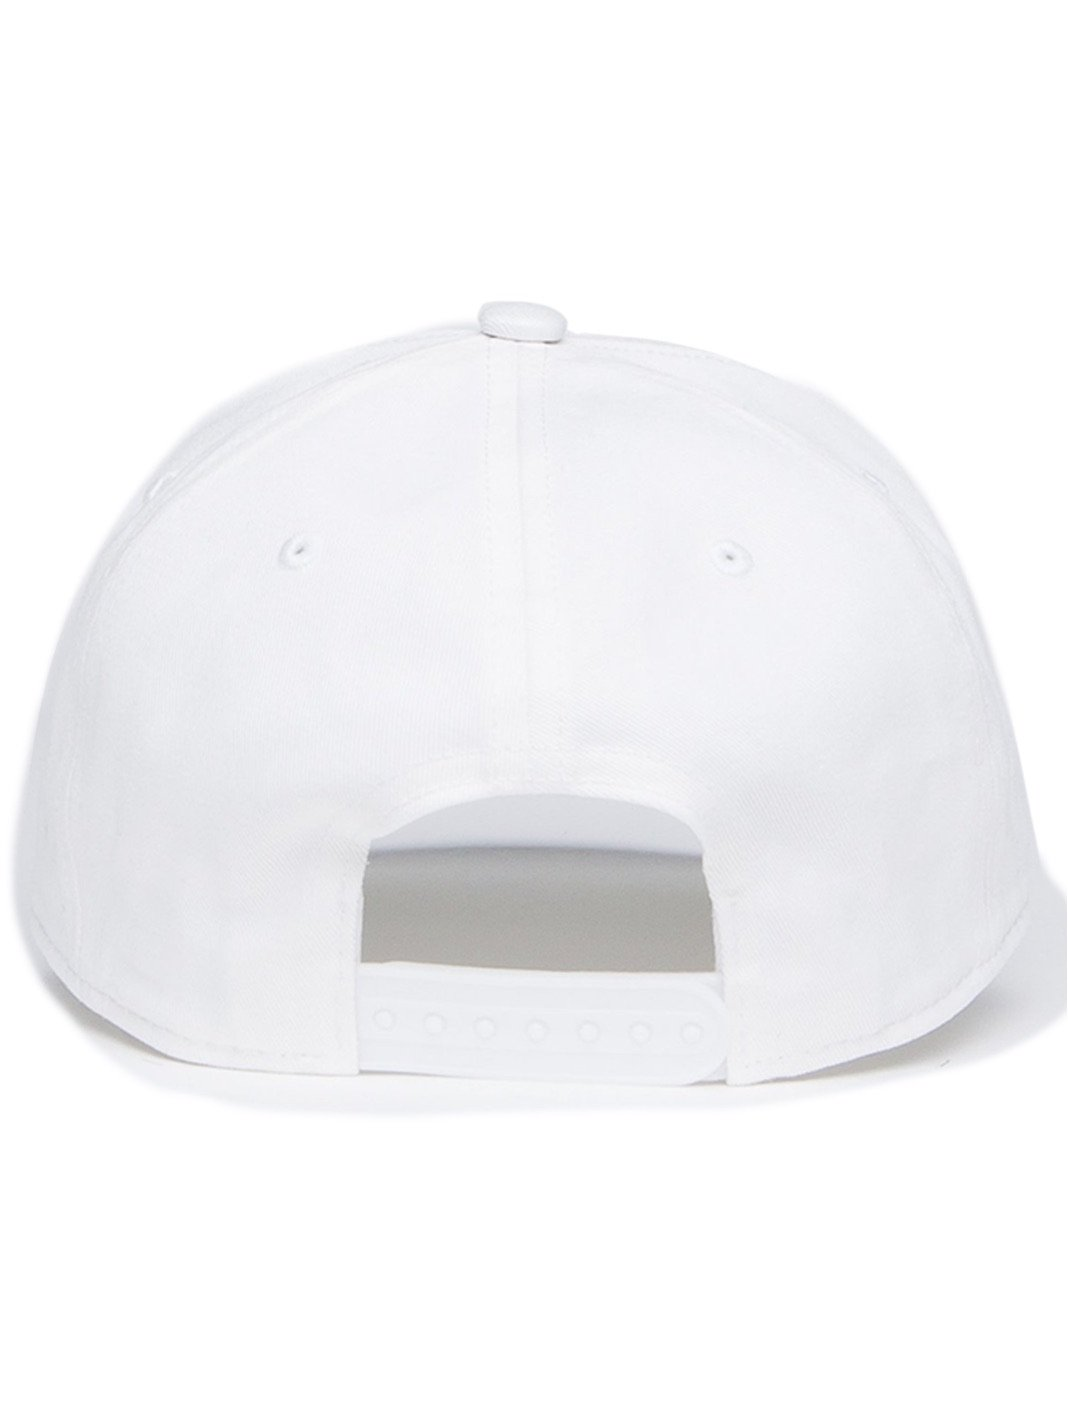 Colombe Cap White - The Bobby Boga